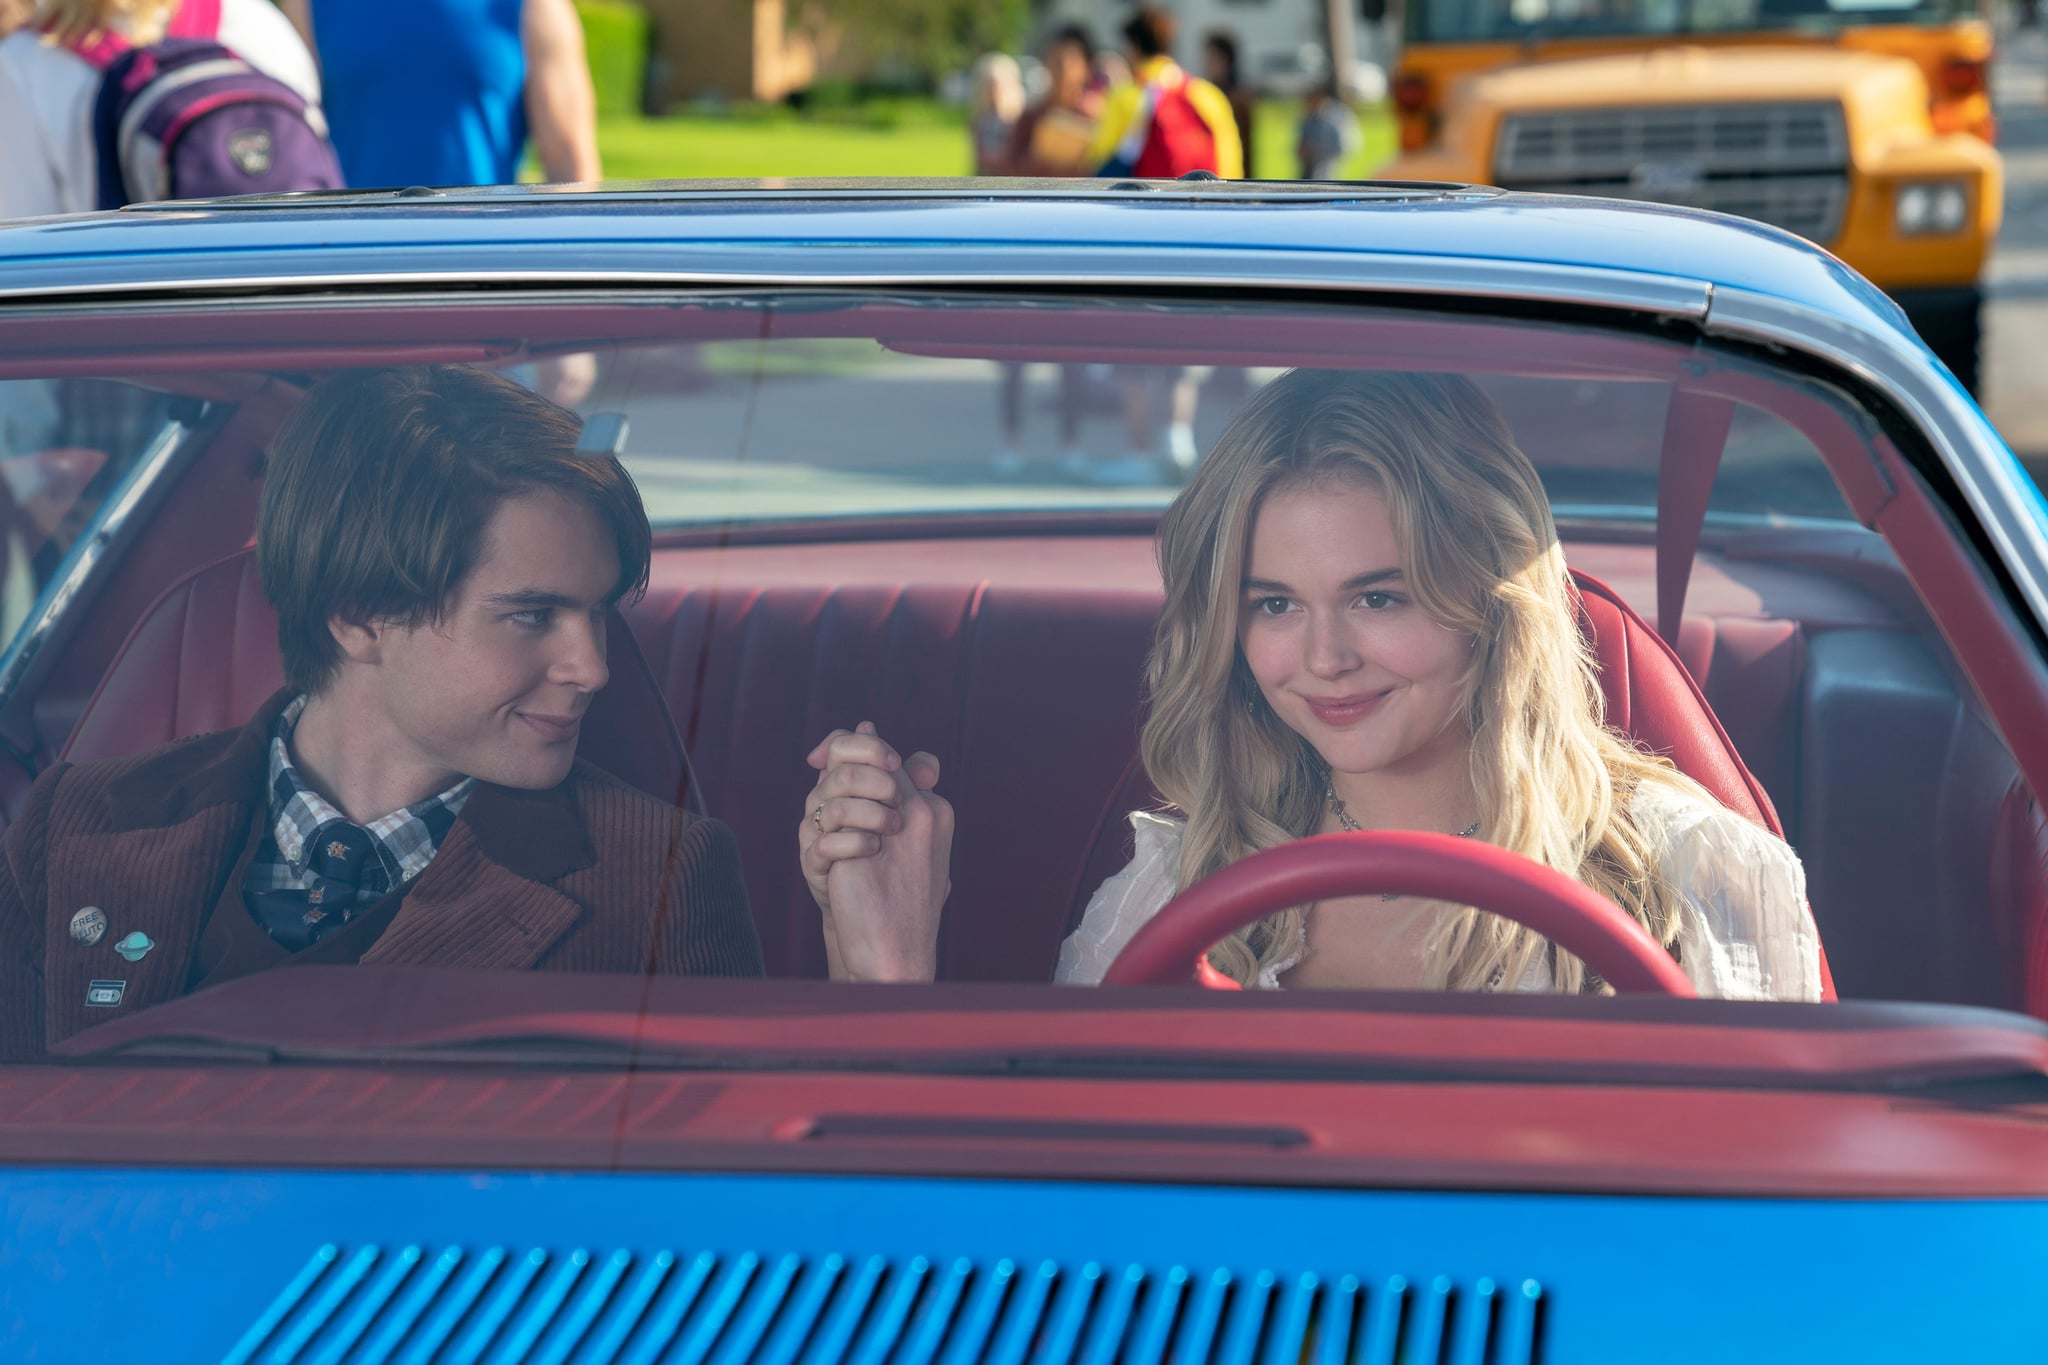 THE BABYSITTER: KILLER QUEEN (L to R) JUDAH LEWIS as COLE and EMILY ALYN LIND as MELANIE in THE BABYSITTER: KILLER QUEEN. Cr. TYLER GOLDEN/NETFLIX © 2020